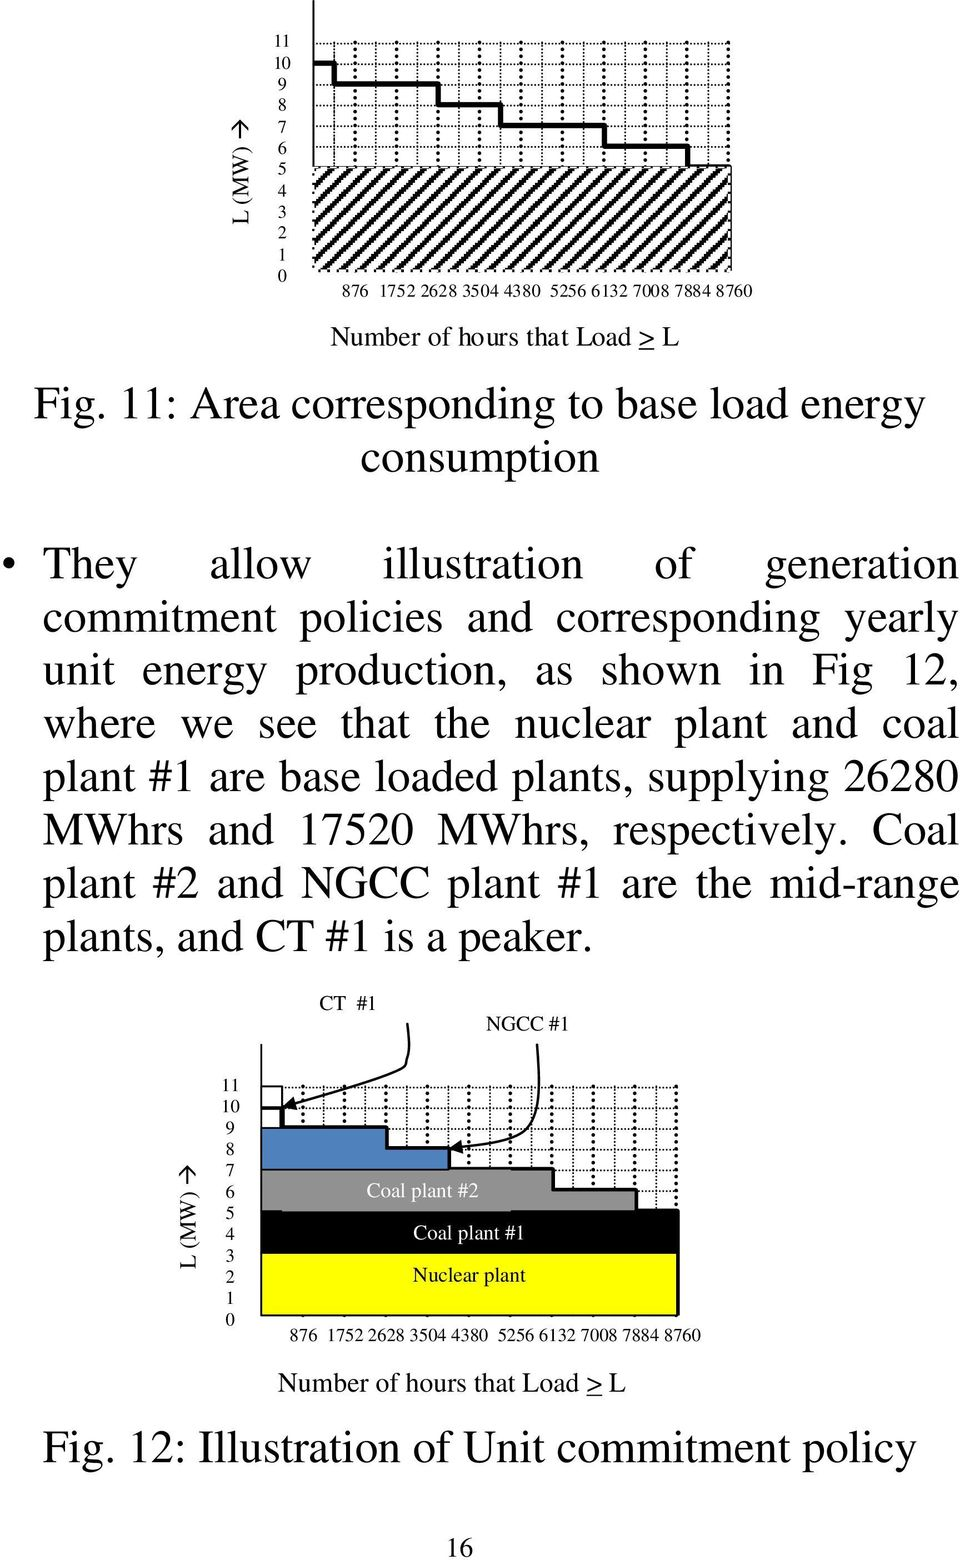 whr w s that th nuclar plant and coal plant # ar bas loadd plants, supplying 26280 MWhrs and 7520 MWhrs, rspctivly.